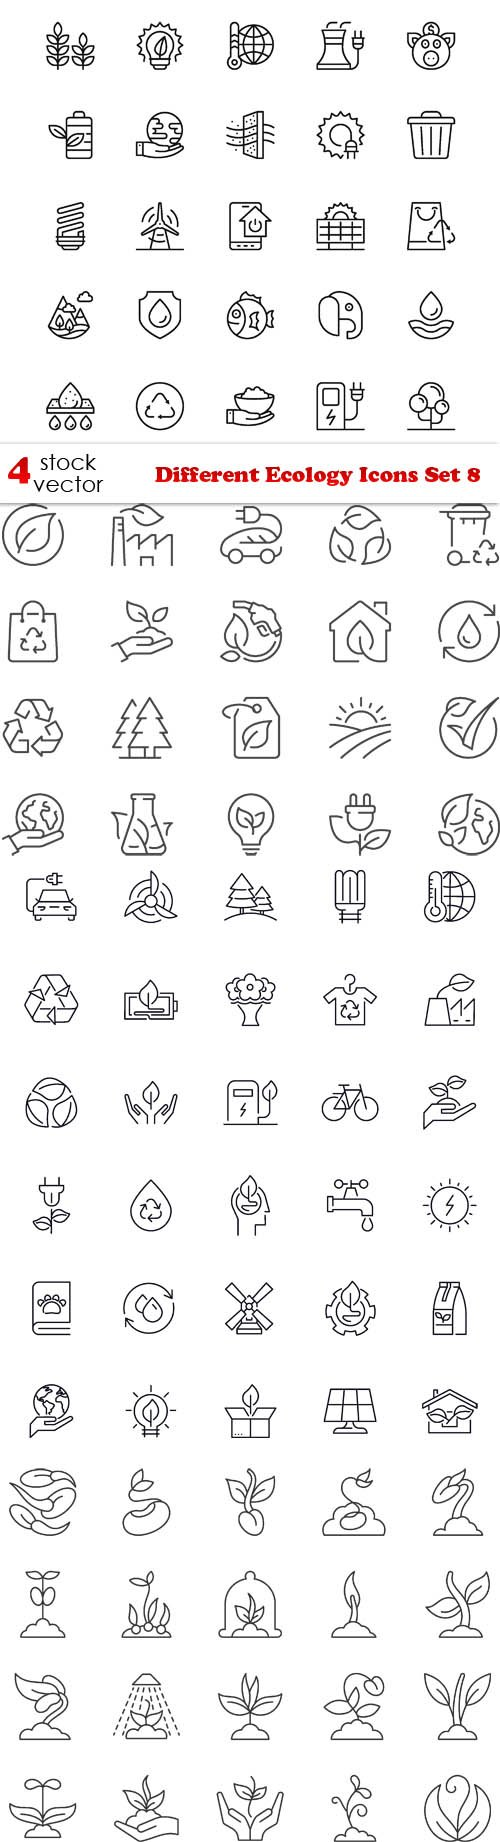 Vectors - Different Ecology Icons Set 8